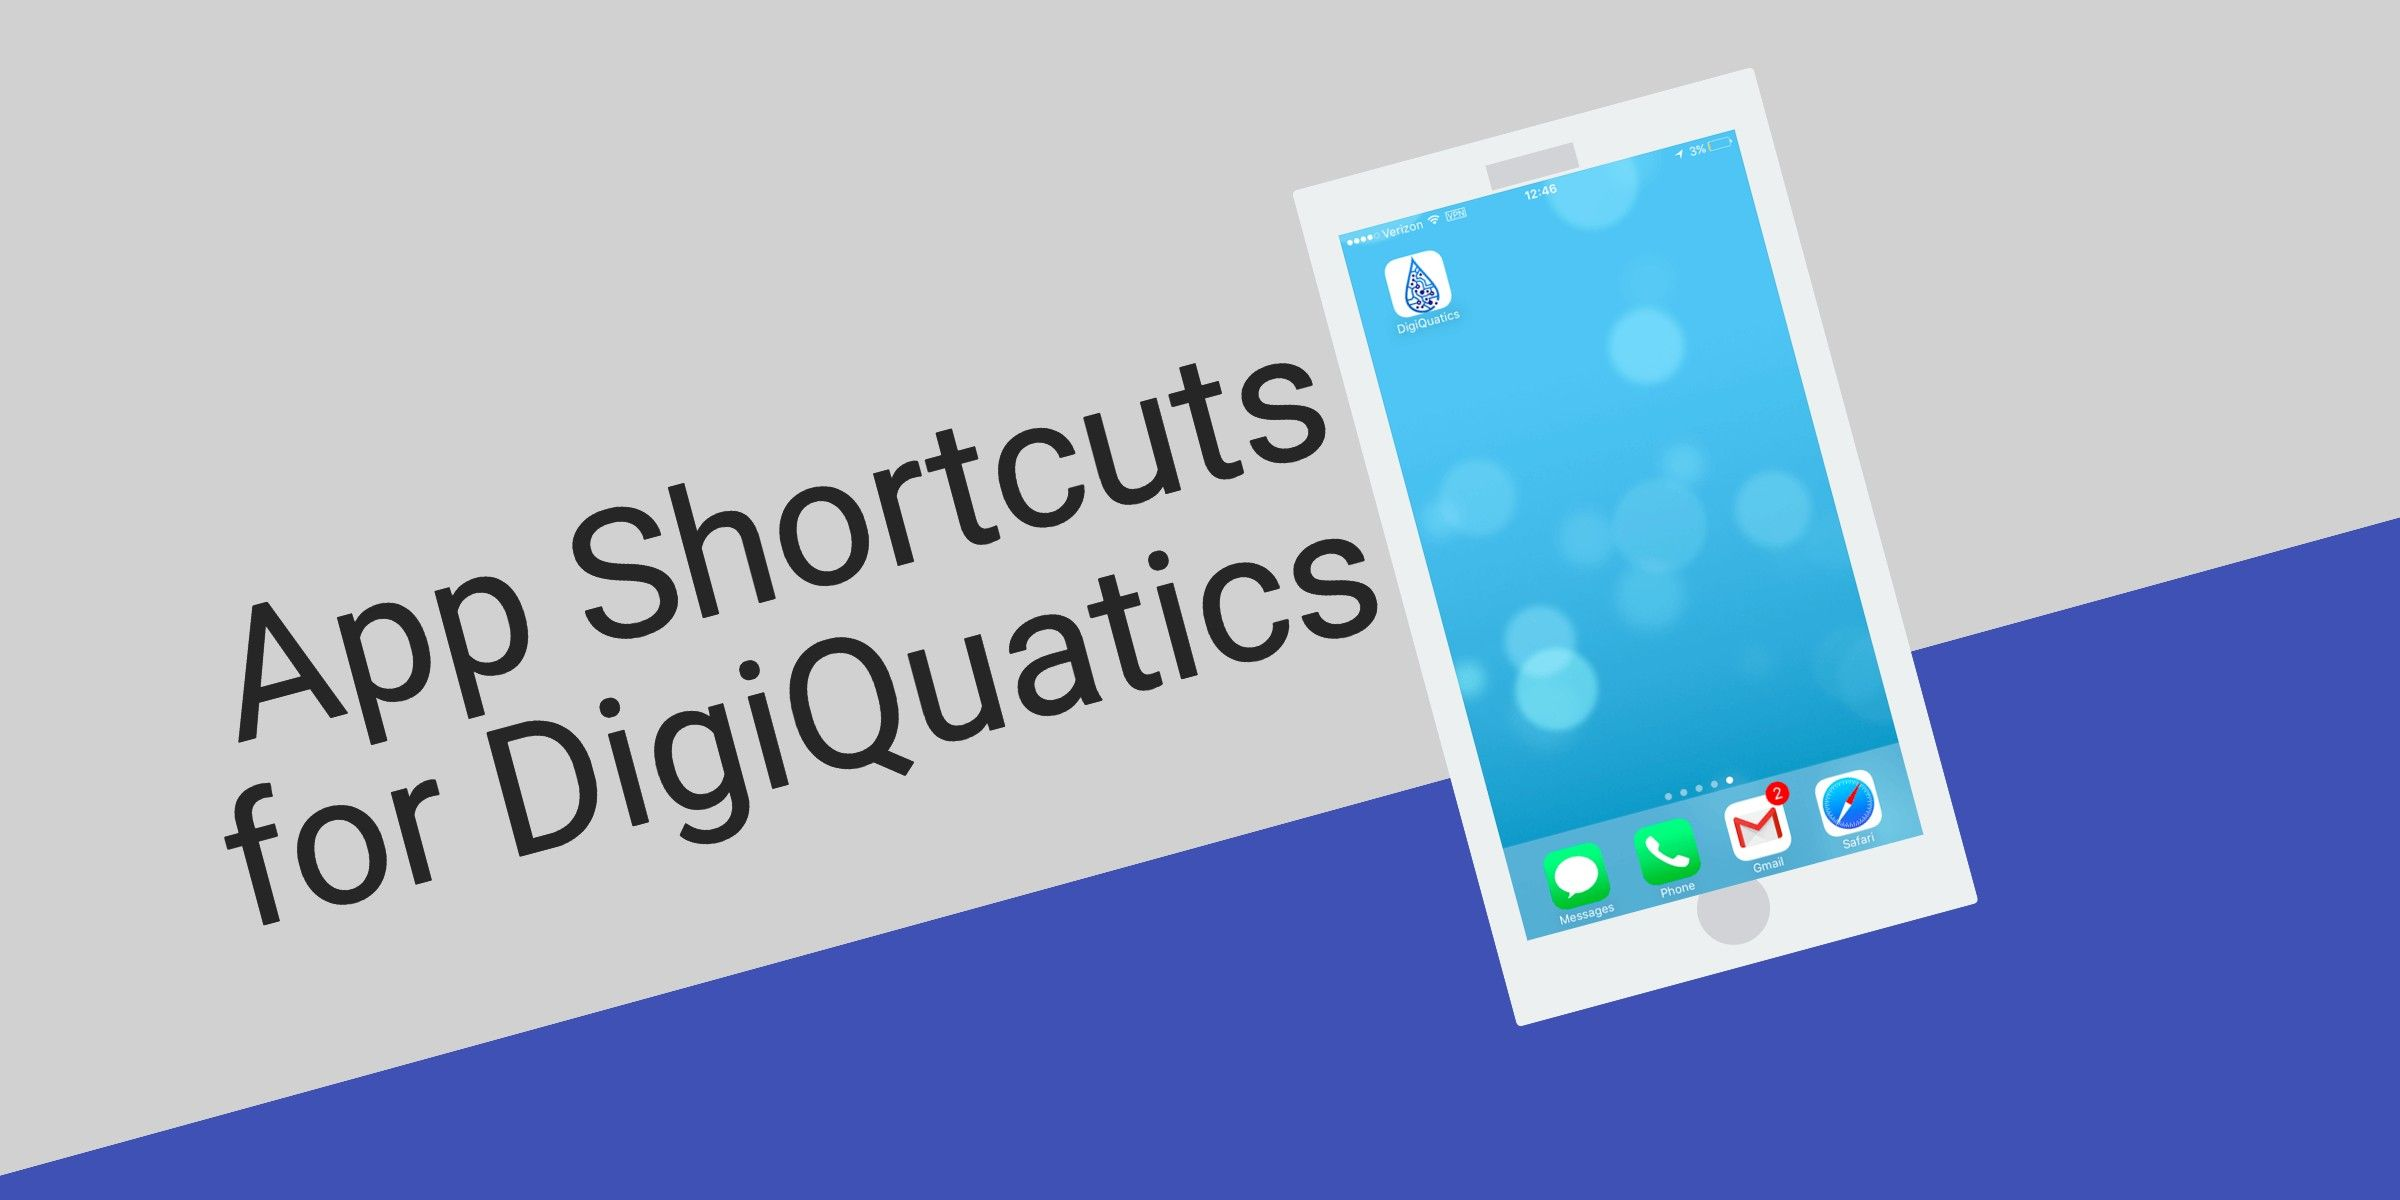 How to add the DigiQuatics App Icon to your Home Screen